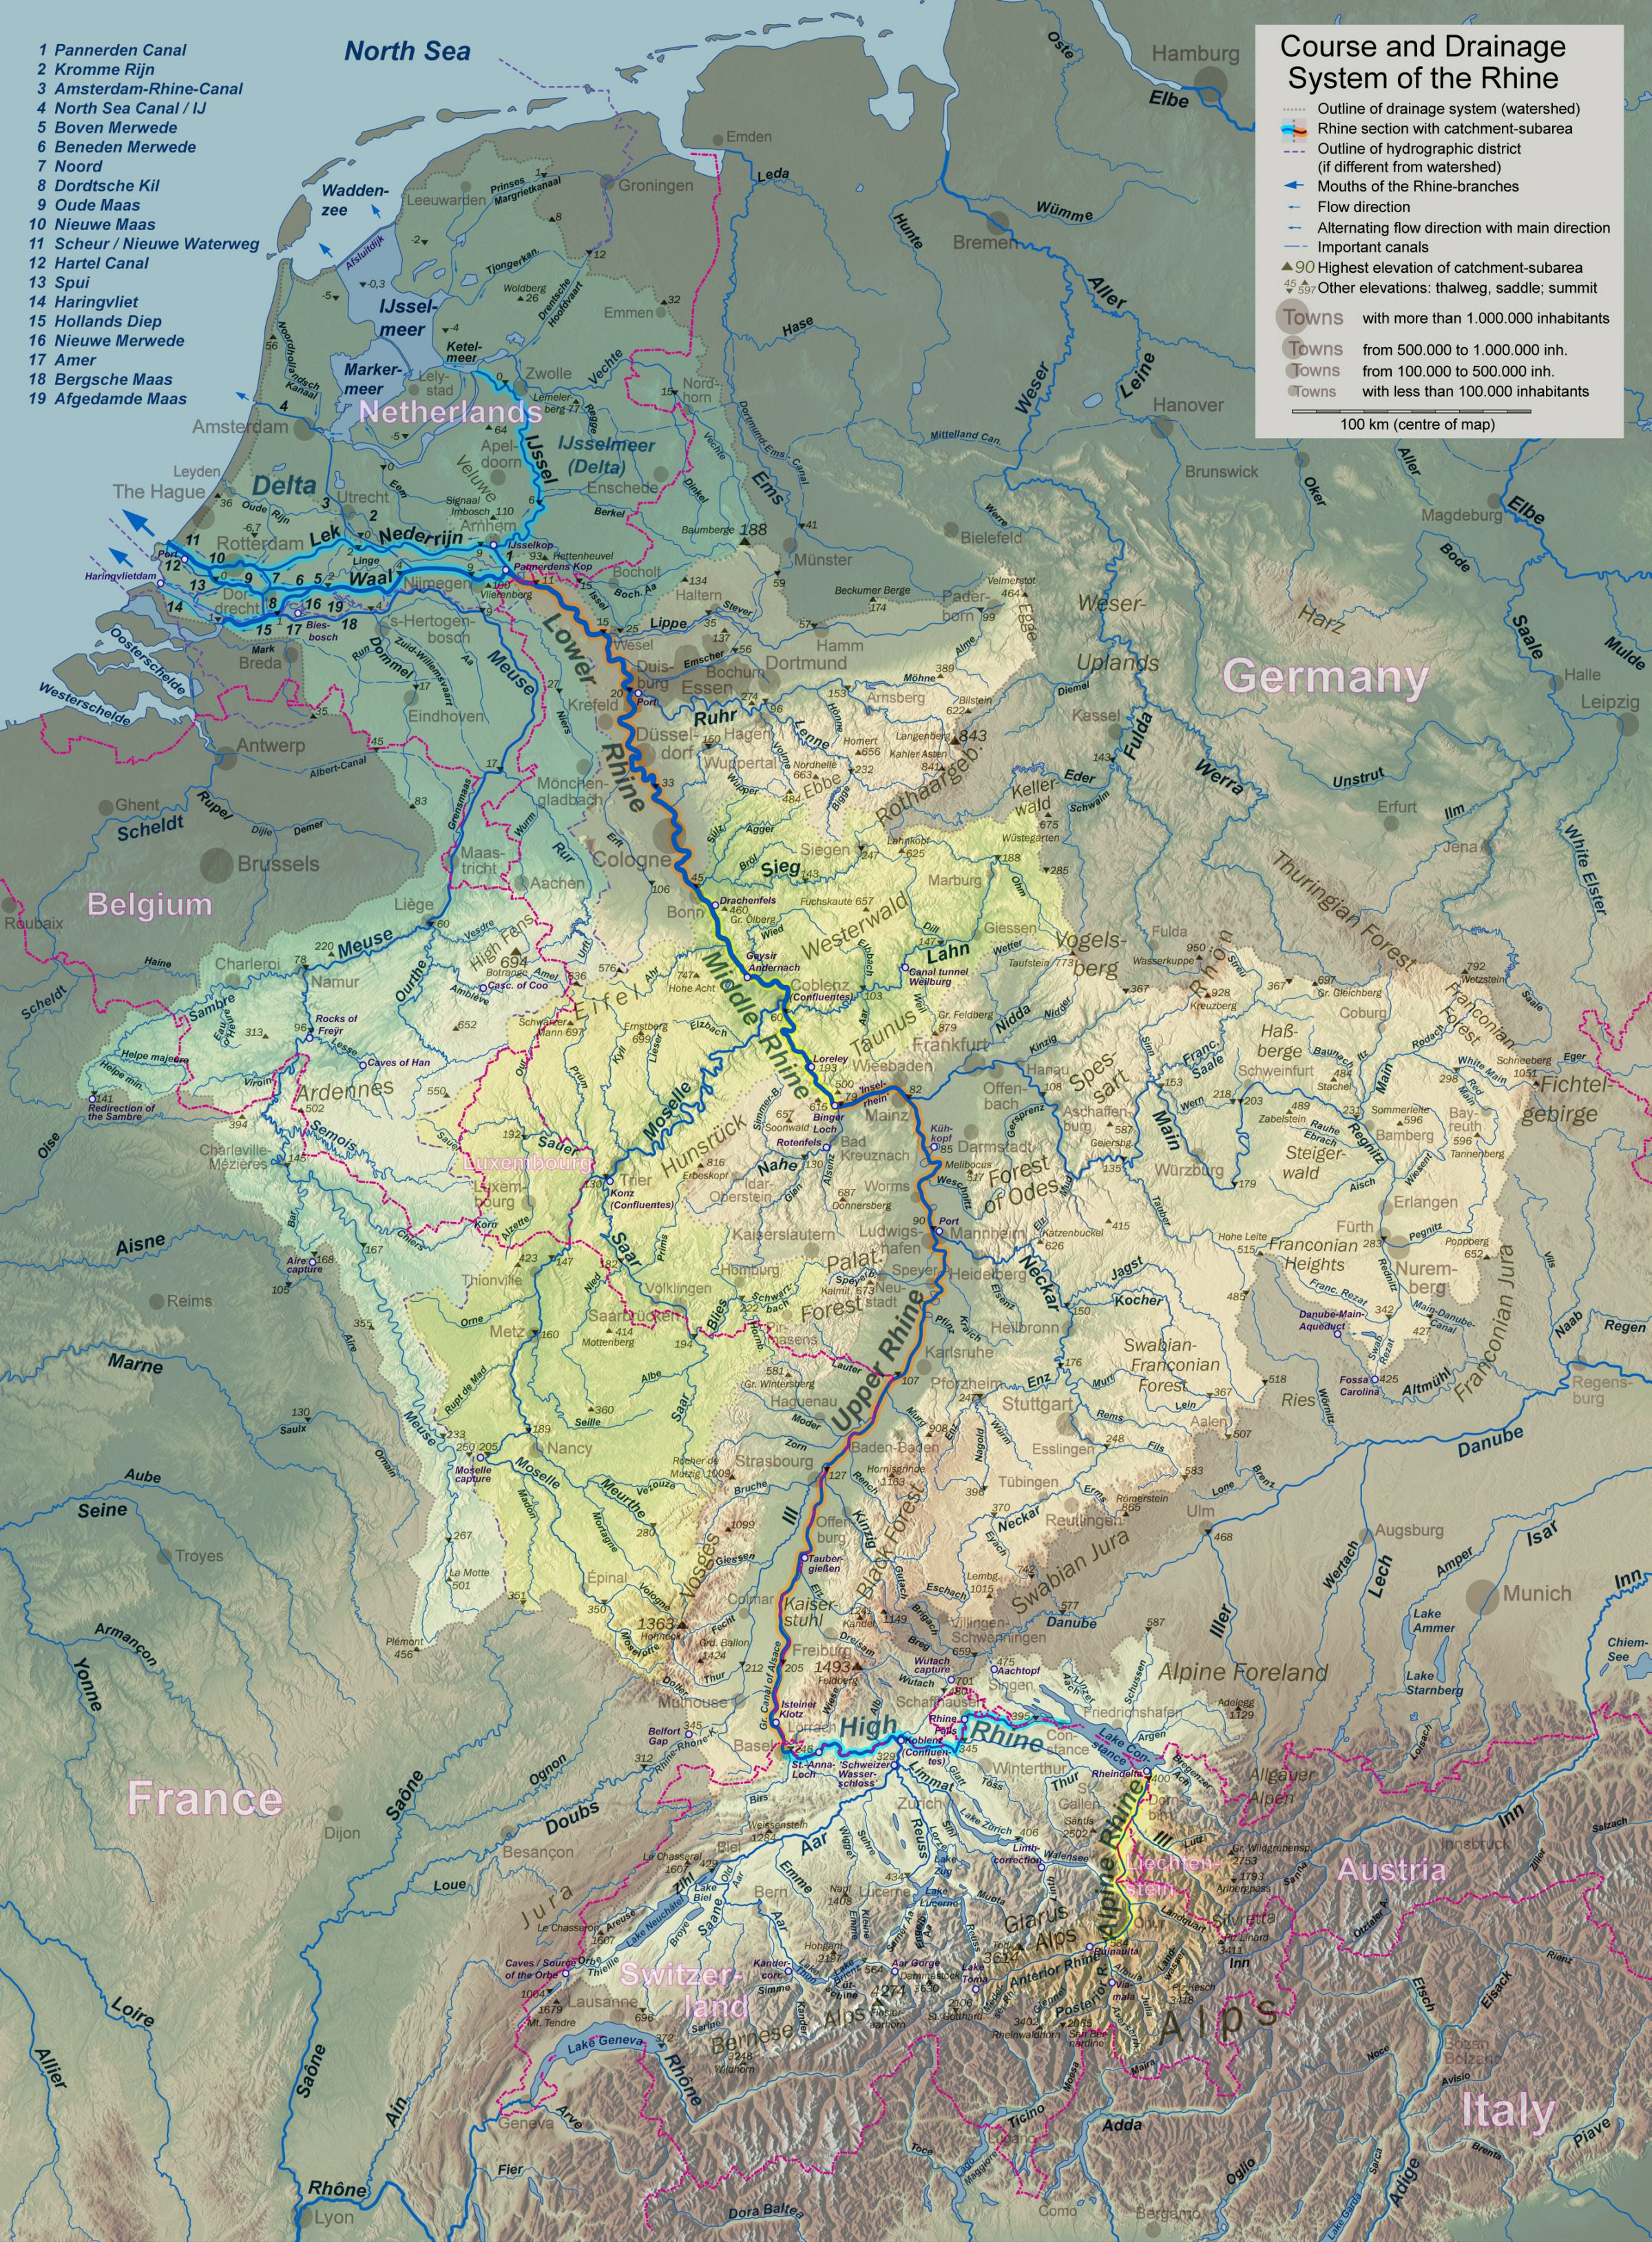 Watershed of the rhine river from wikepedia very good detail and watershed of the rhine river from wikepedia very good detail and colours mappa mundihistorical mapsvintage sciox Gallery